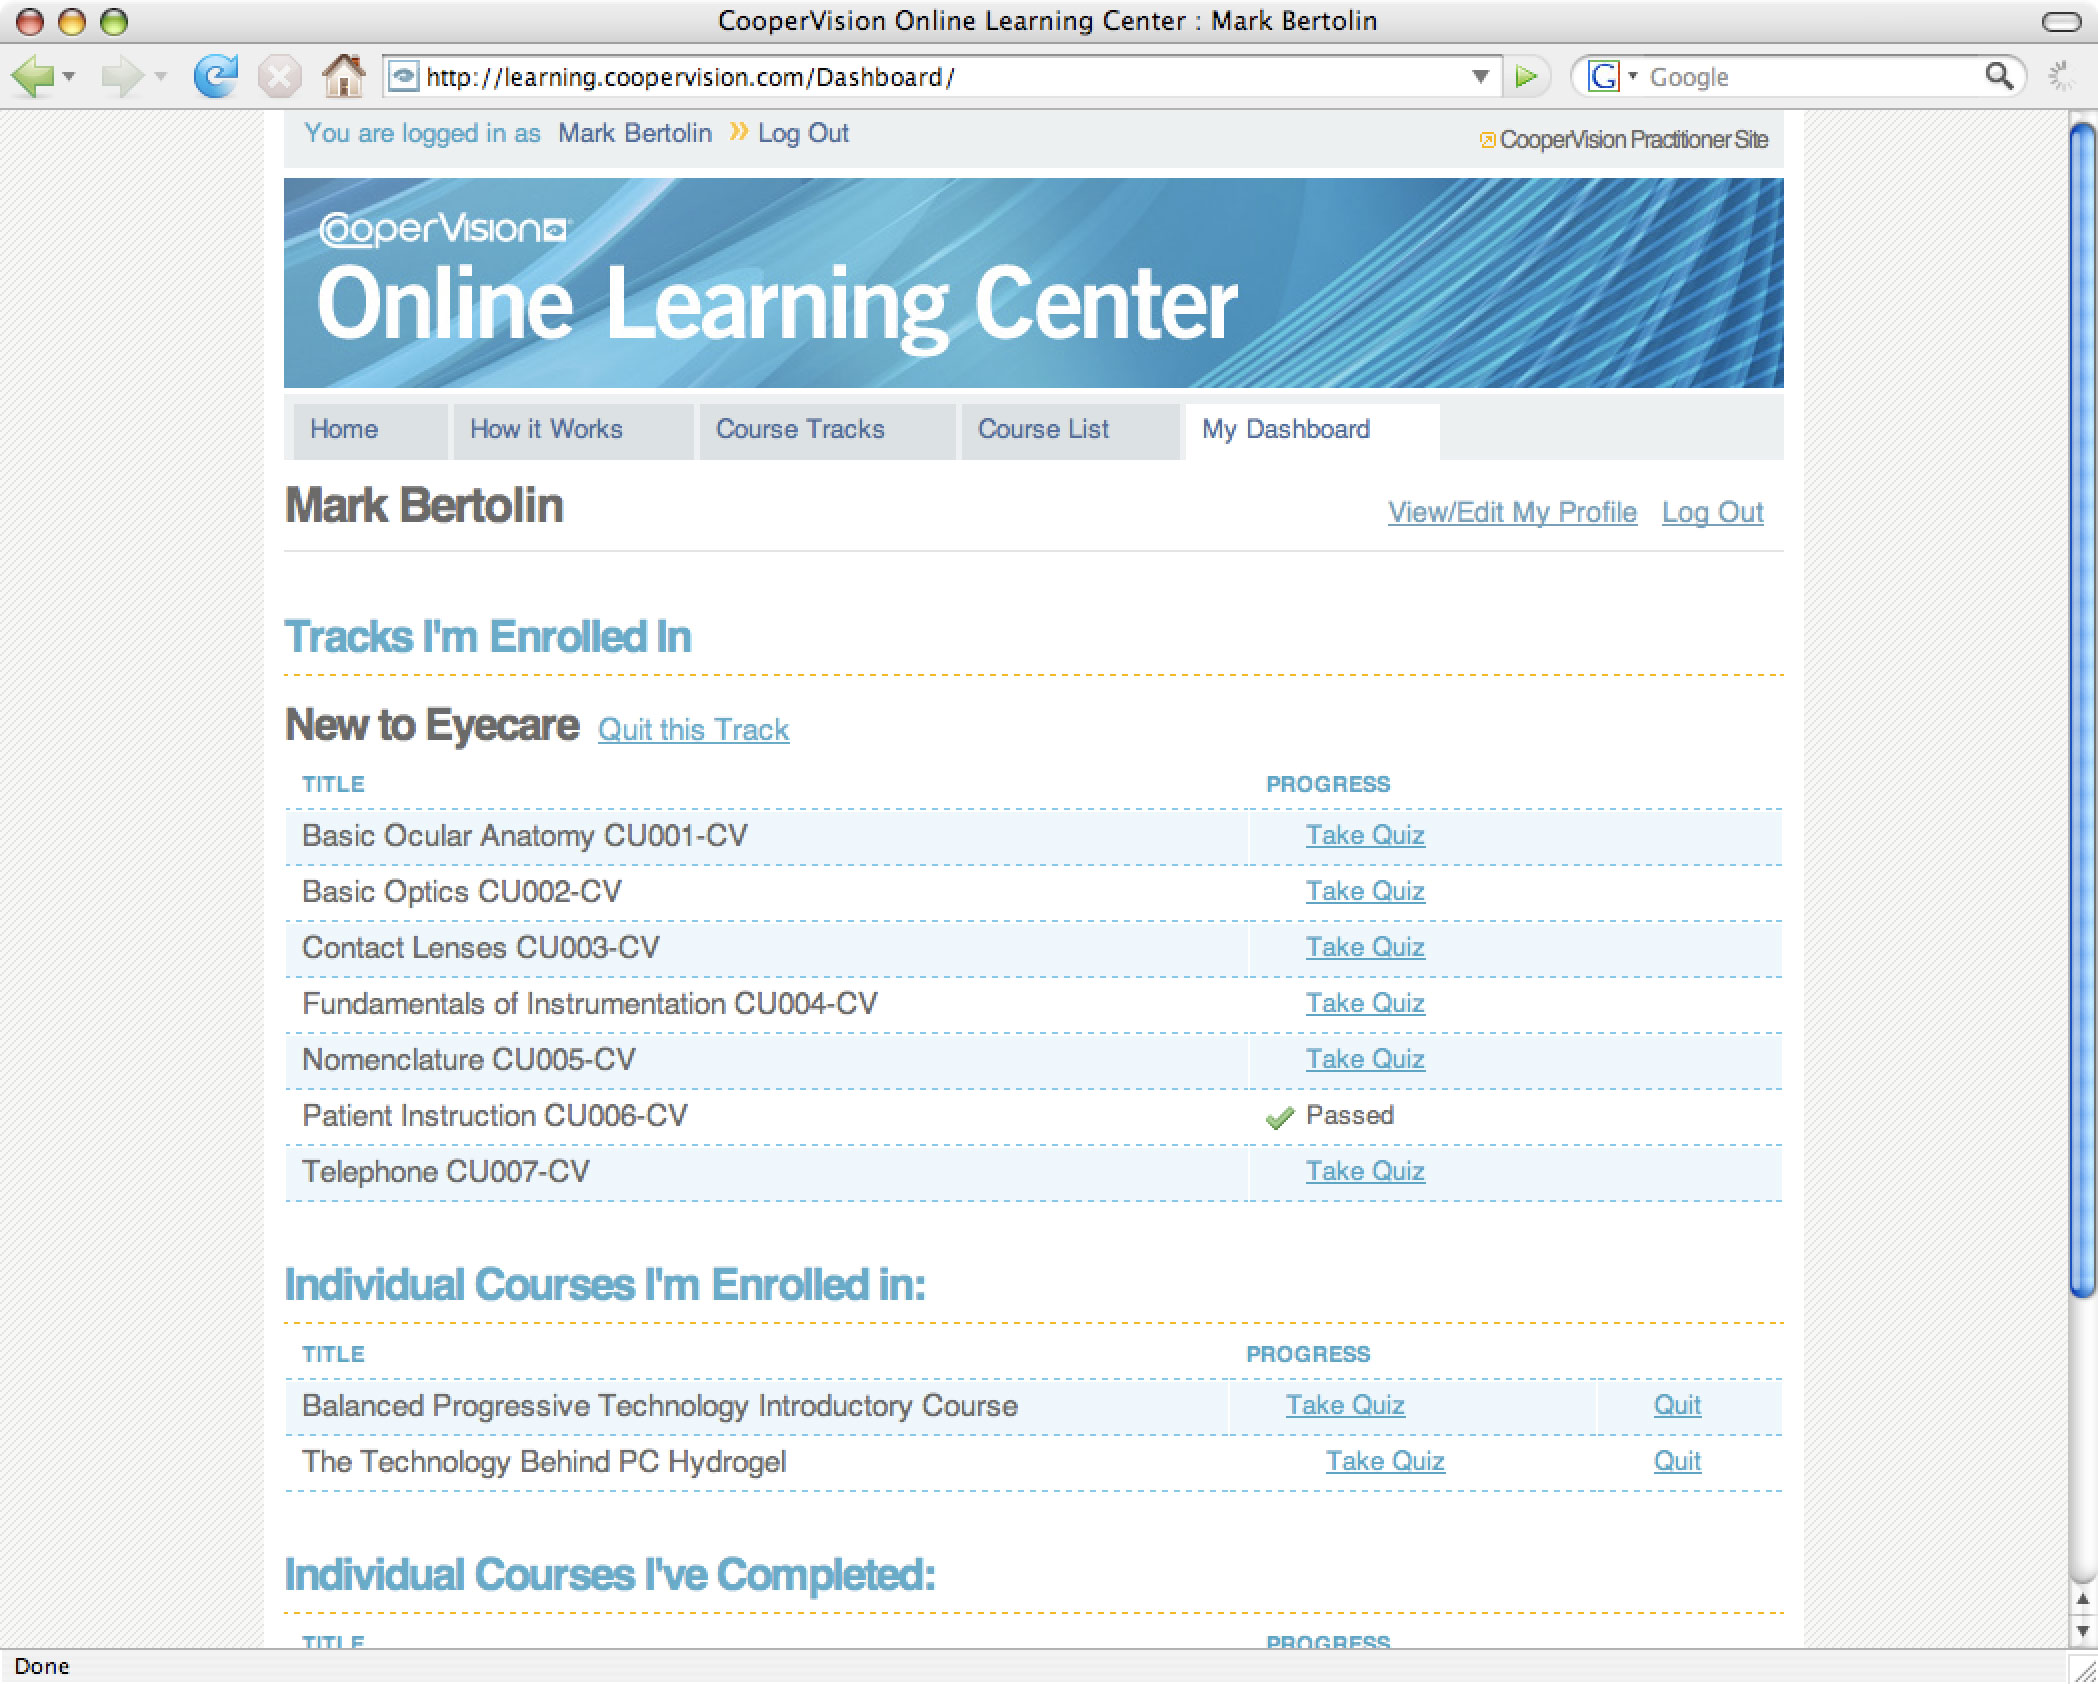 CooperVision Online Learning Center